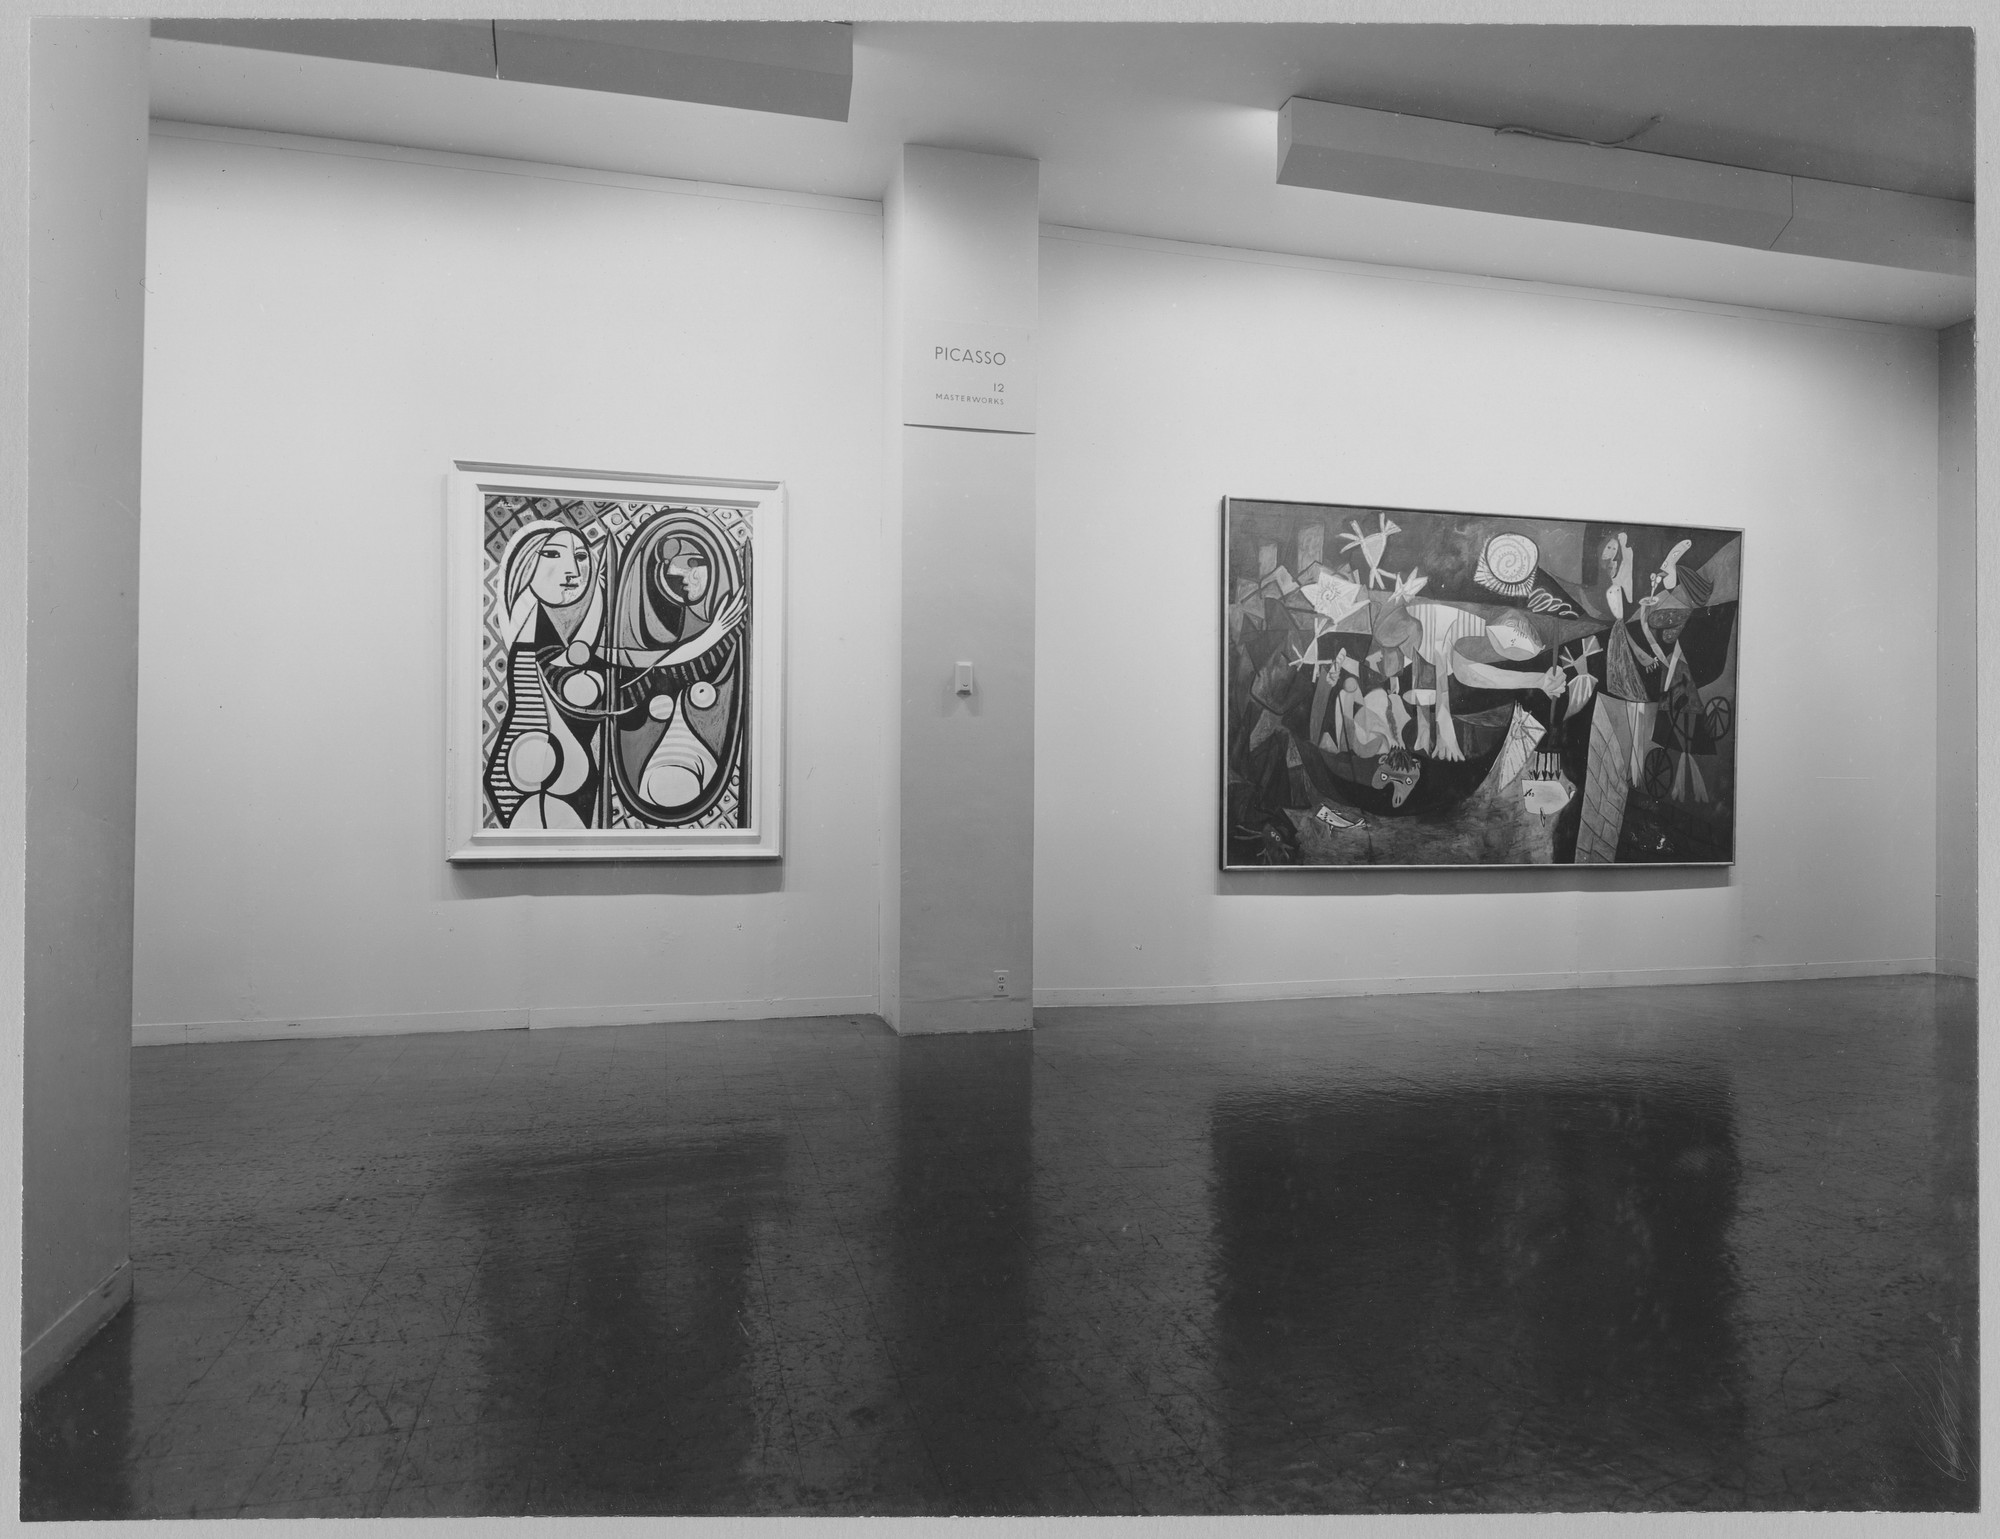 "Installation view of the exhibition, ""Picasso: 12 Masterworks"" March 15, 1955–April 17, 1955. Photographic Archive. The Museum of Modern Art Archives, New York. IN574.1. Photograph by Soichi Sunami."